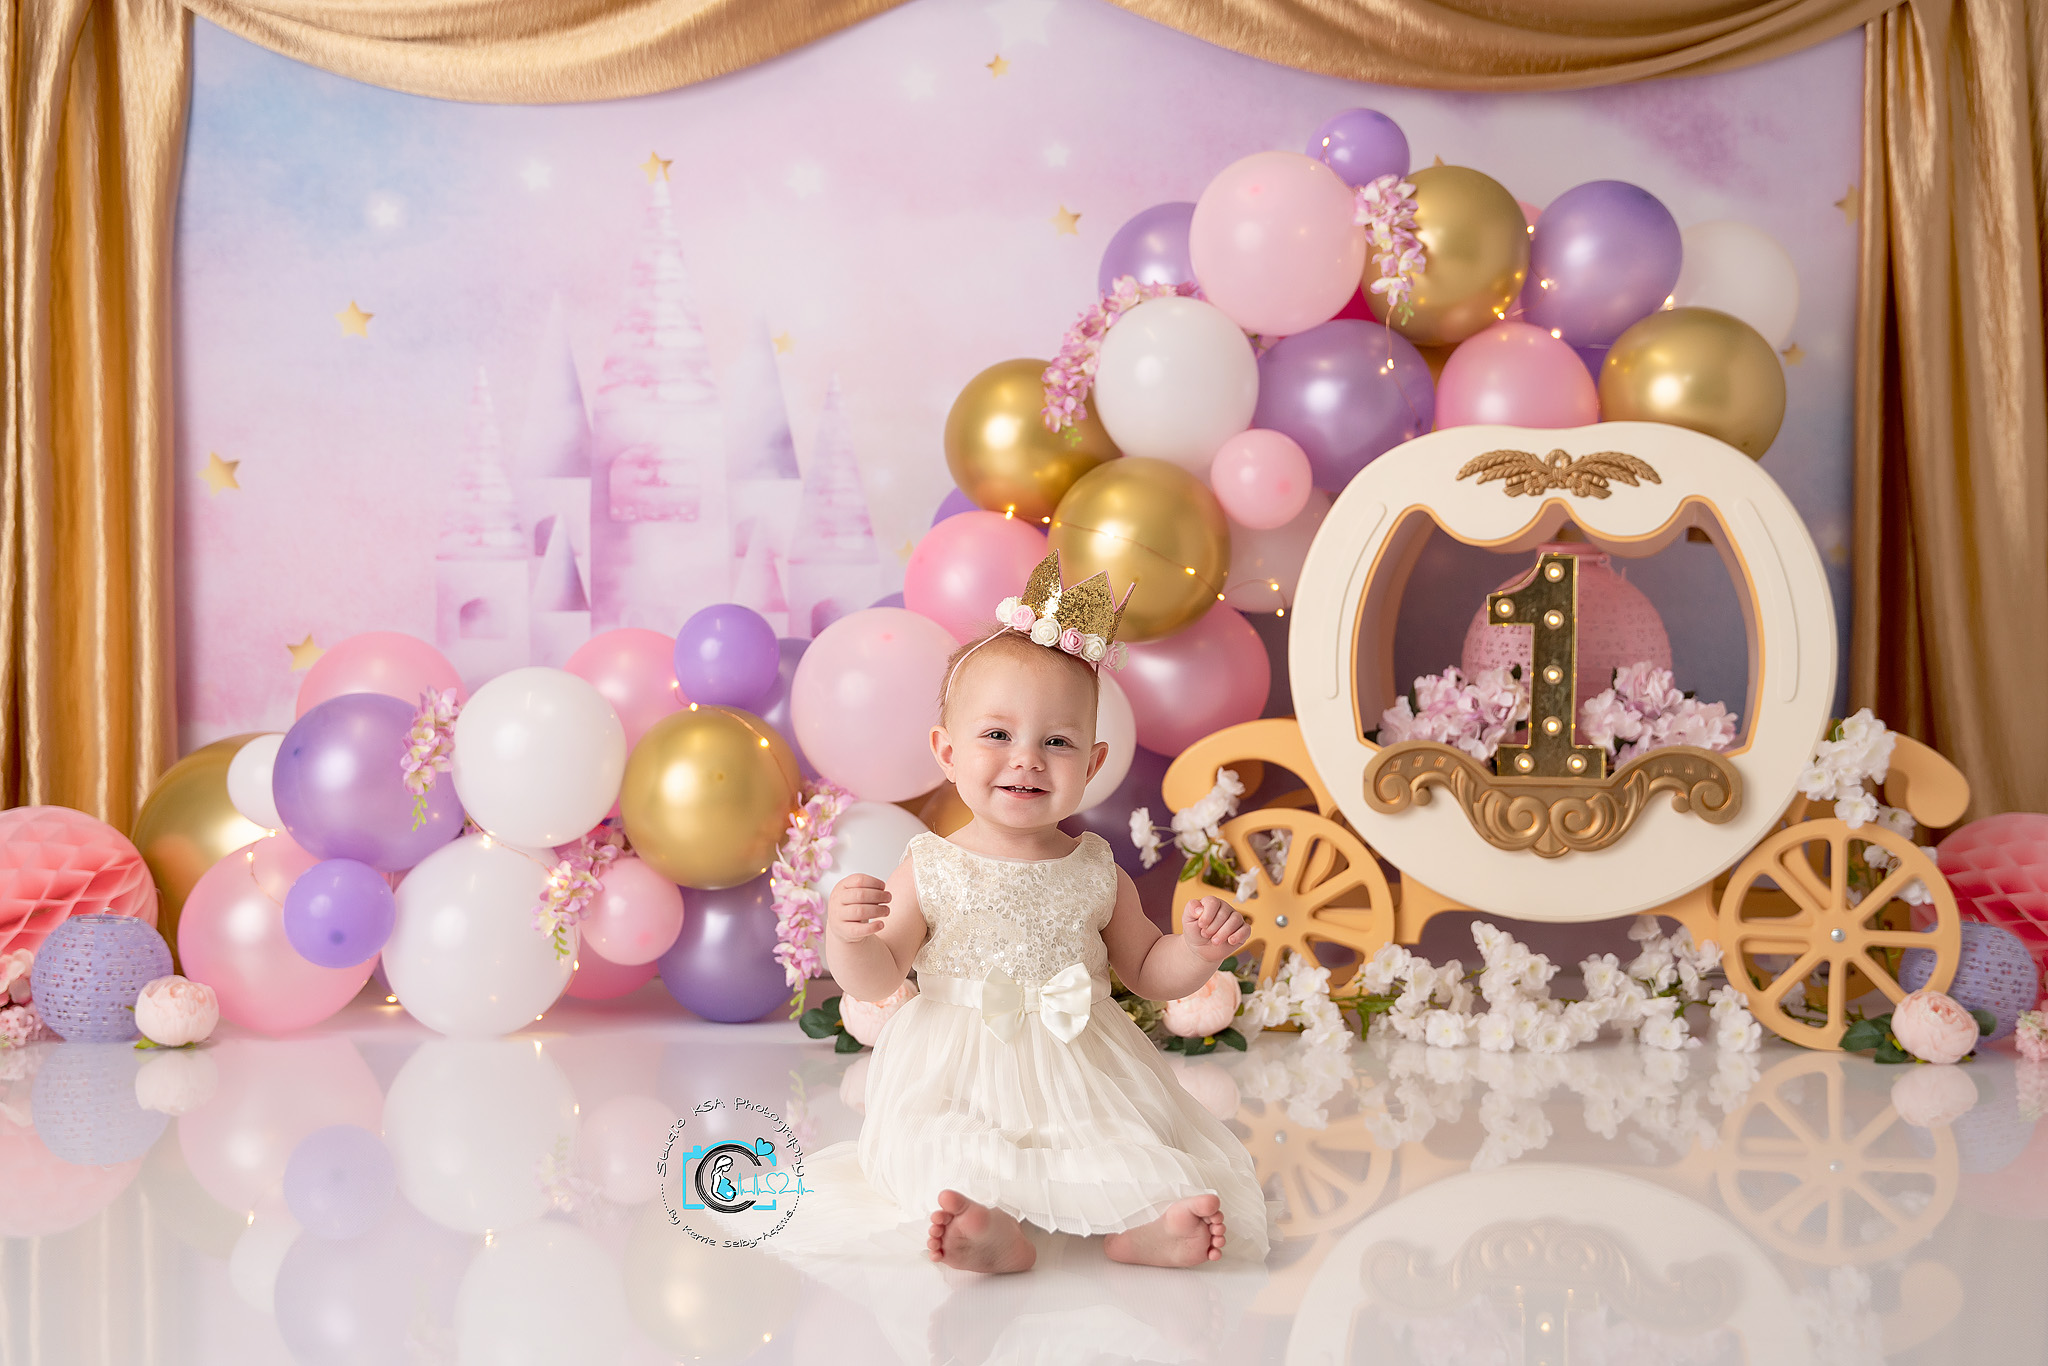 Gold Coast Cake Smash Photography